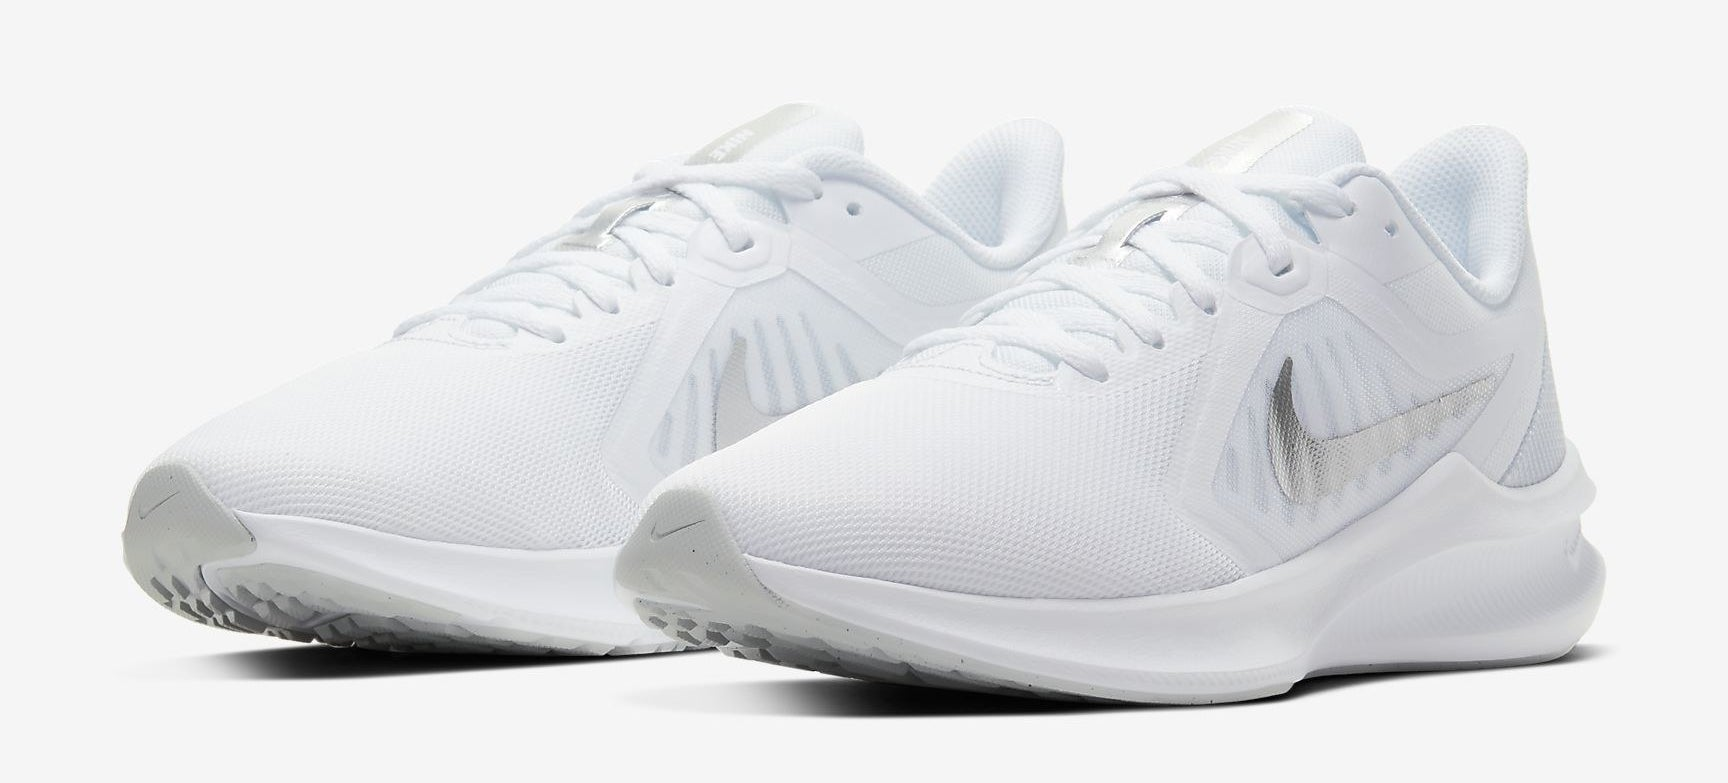 A pair of running shoes on a plain background